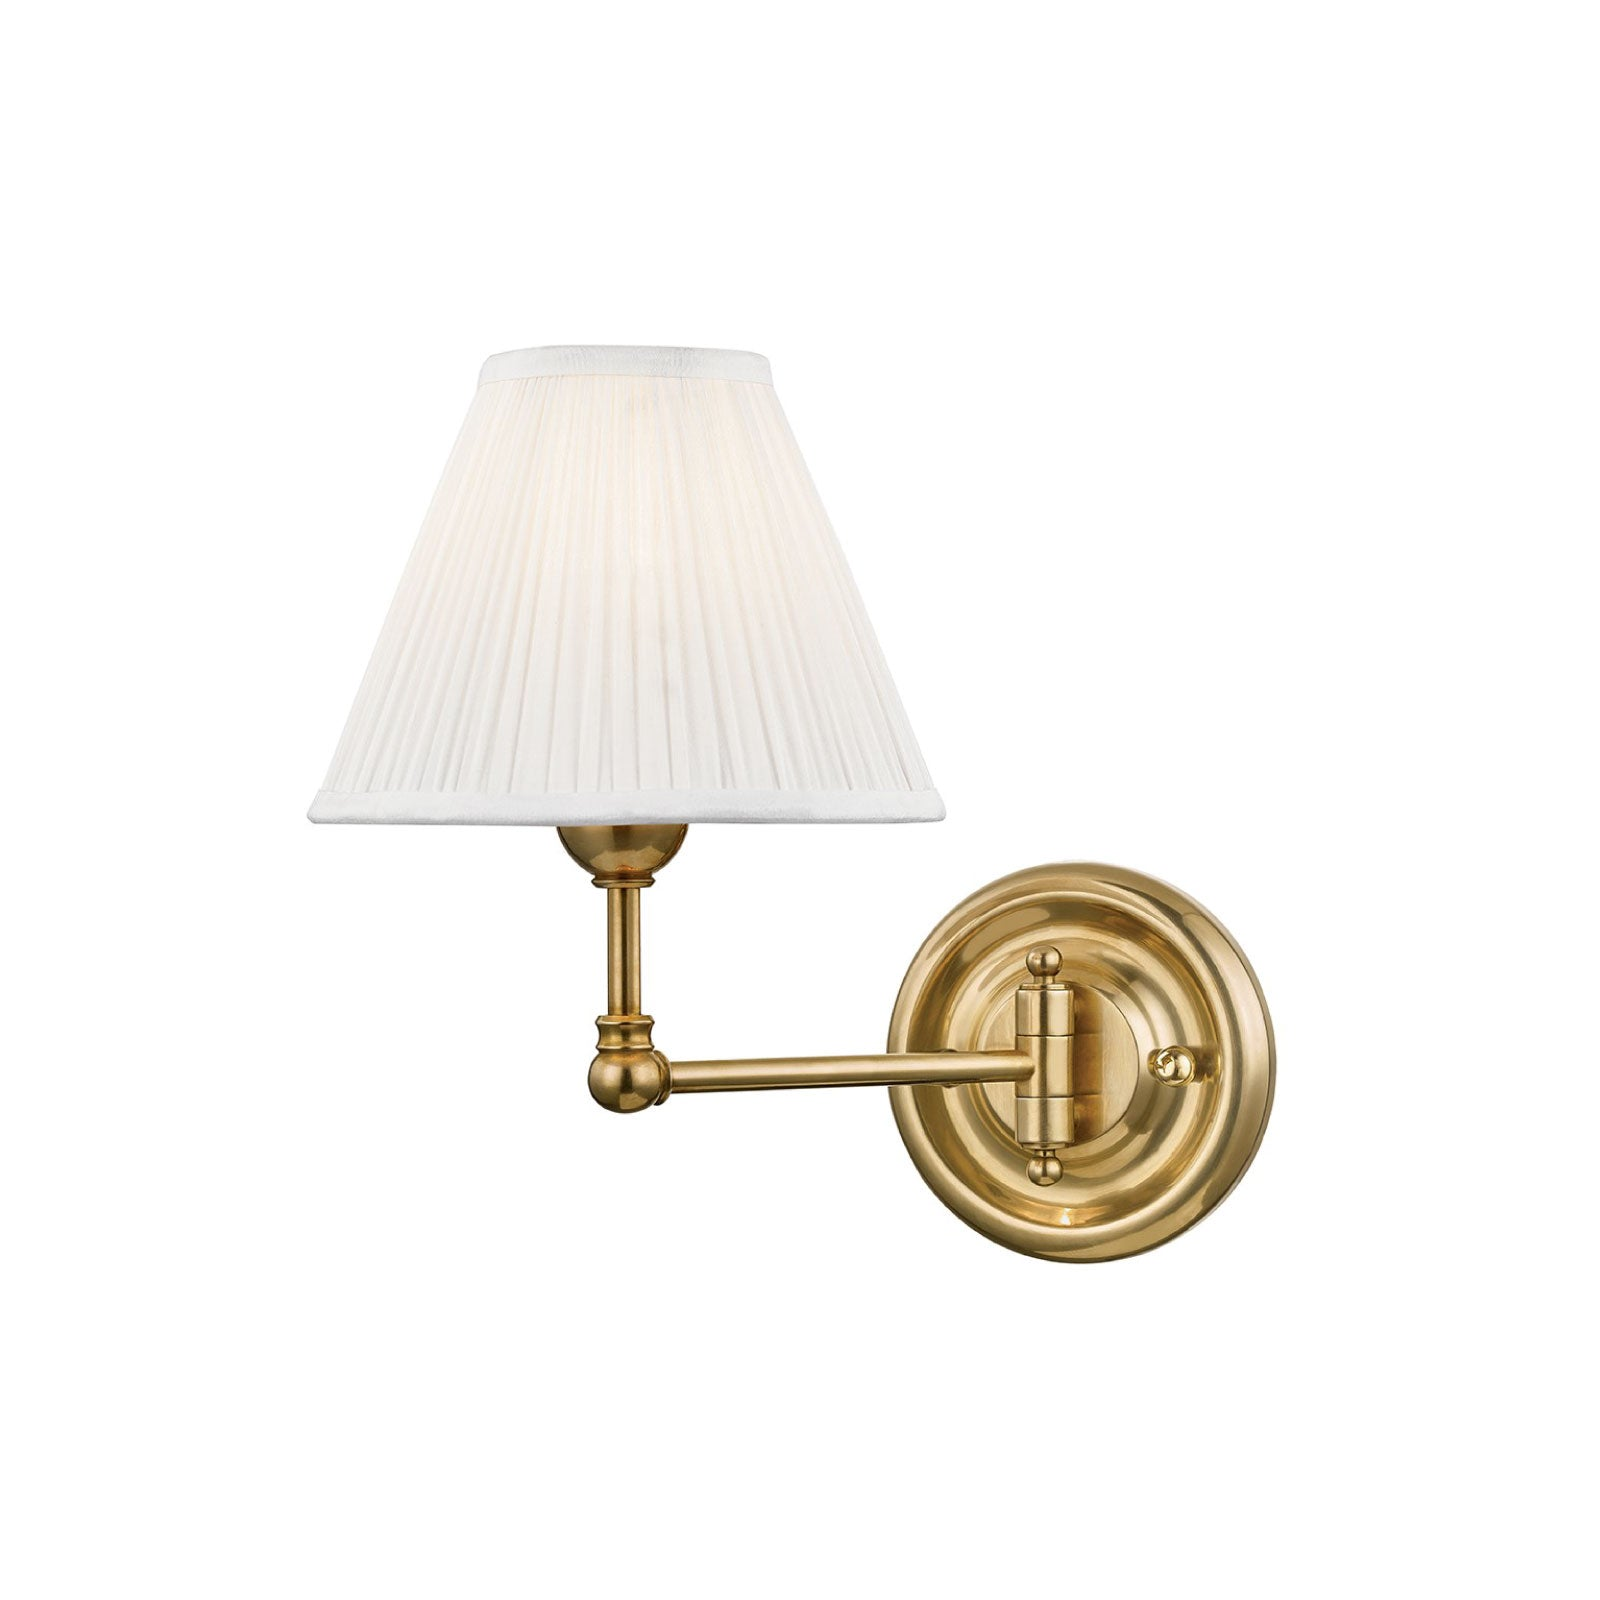 George Sconce in Brass